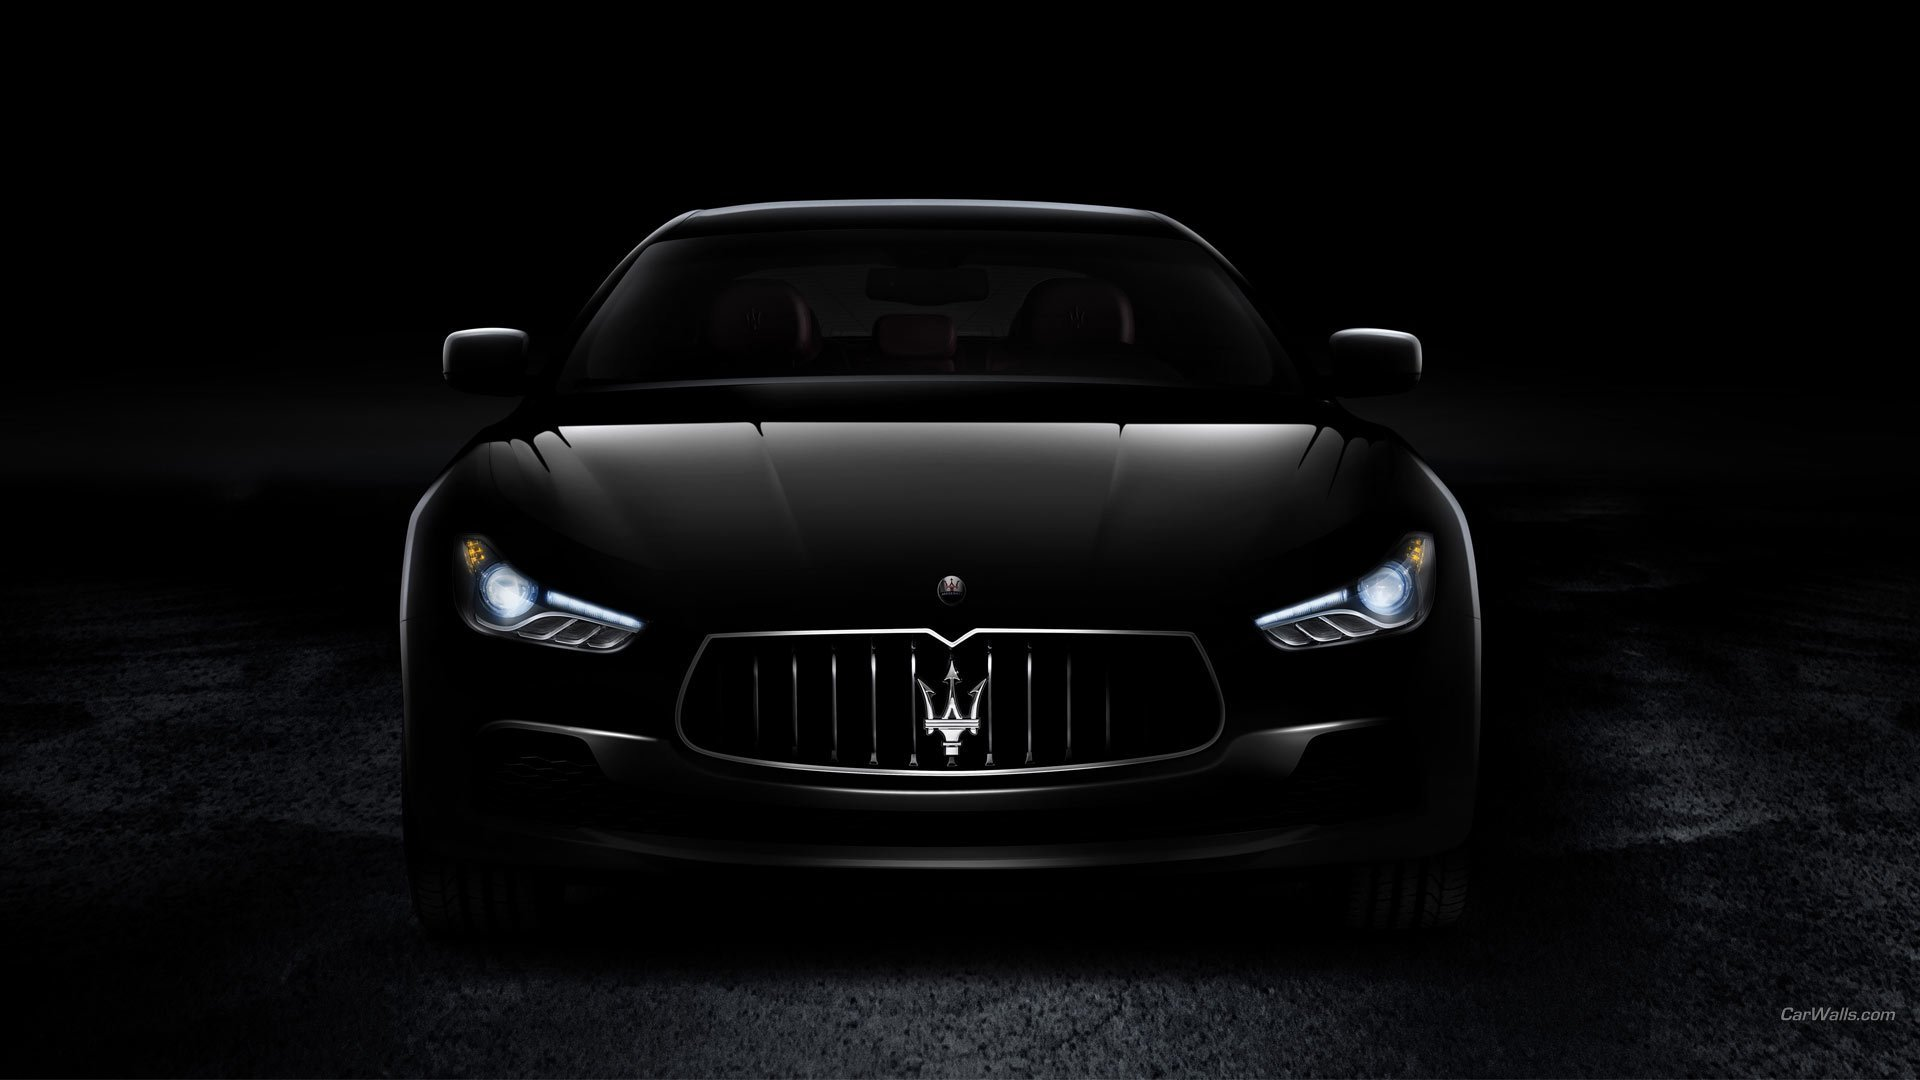 Latest 87 Maserati Ghibli Hd Wallpapers Background Images Free Download